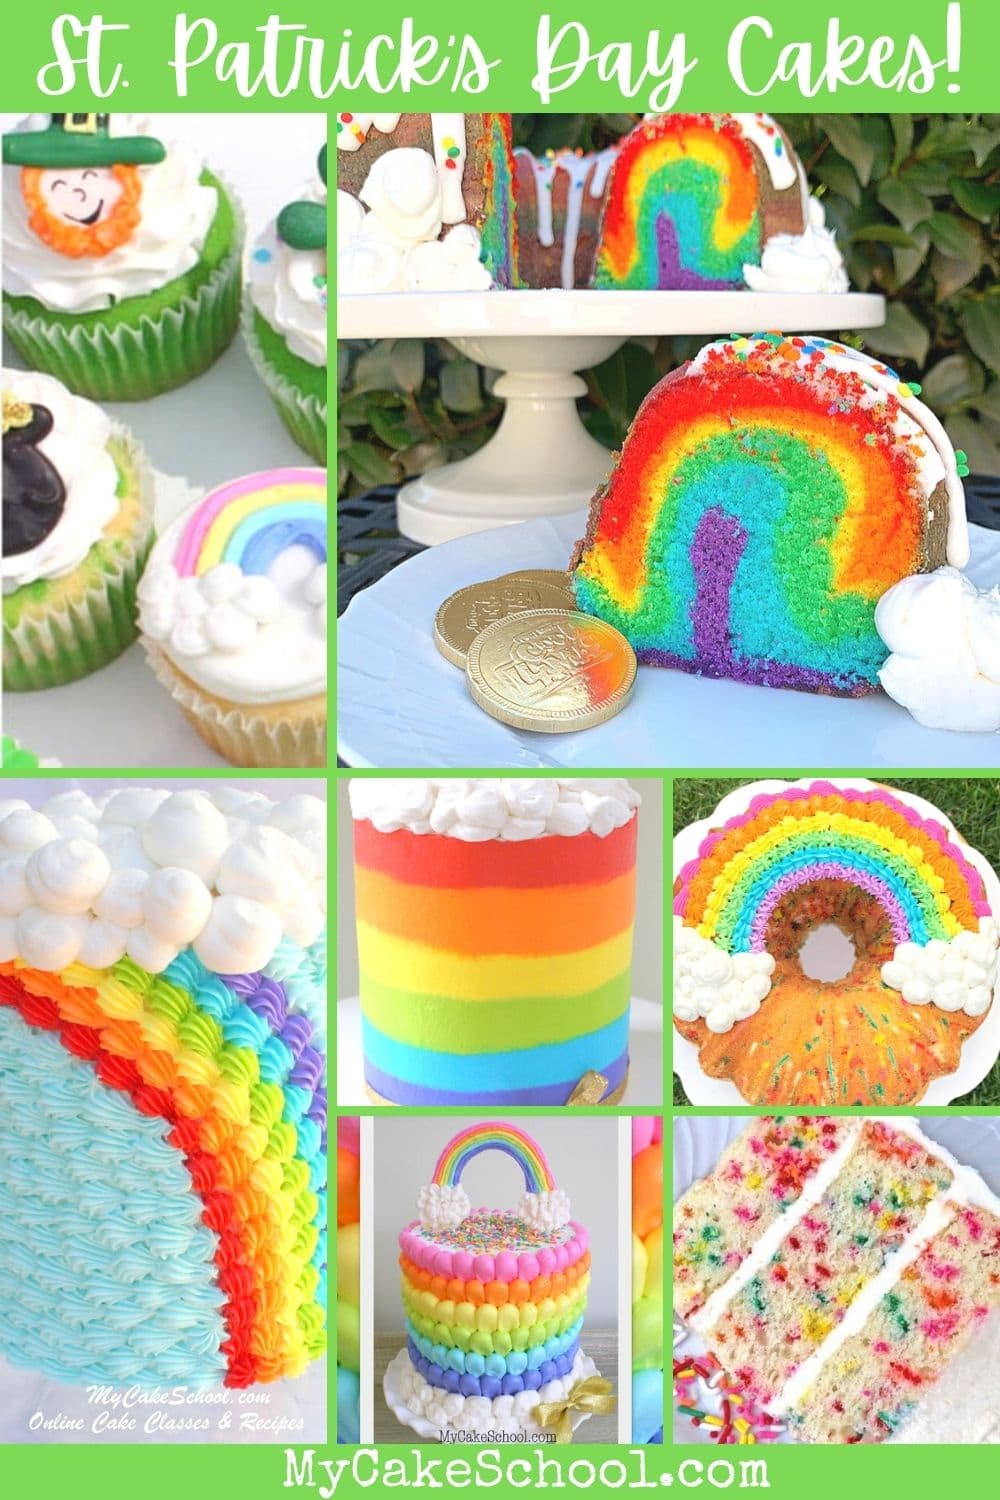 St. Patrick's Day Cakes and Ideas!